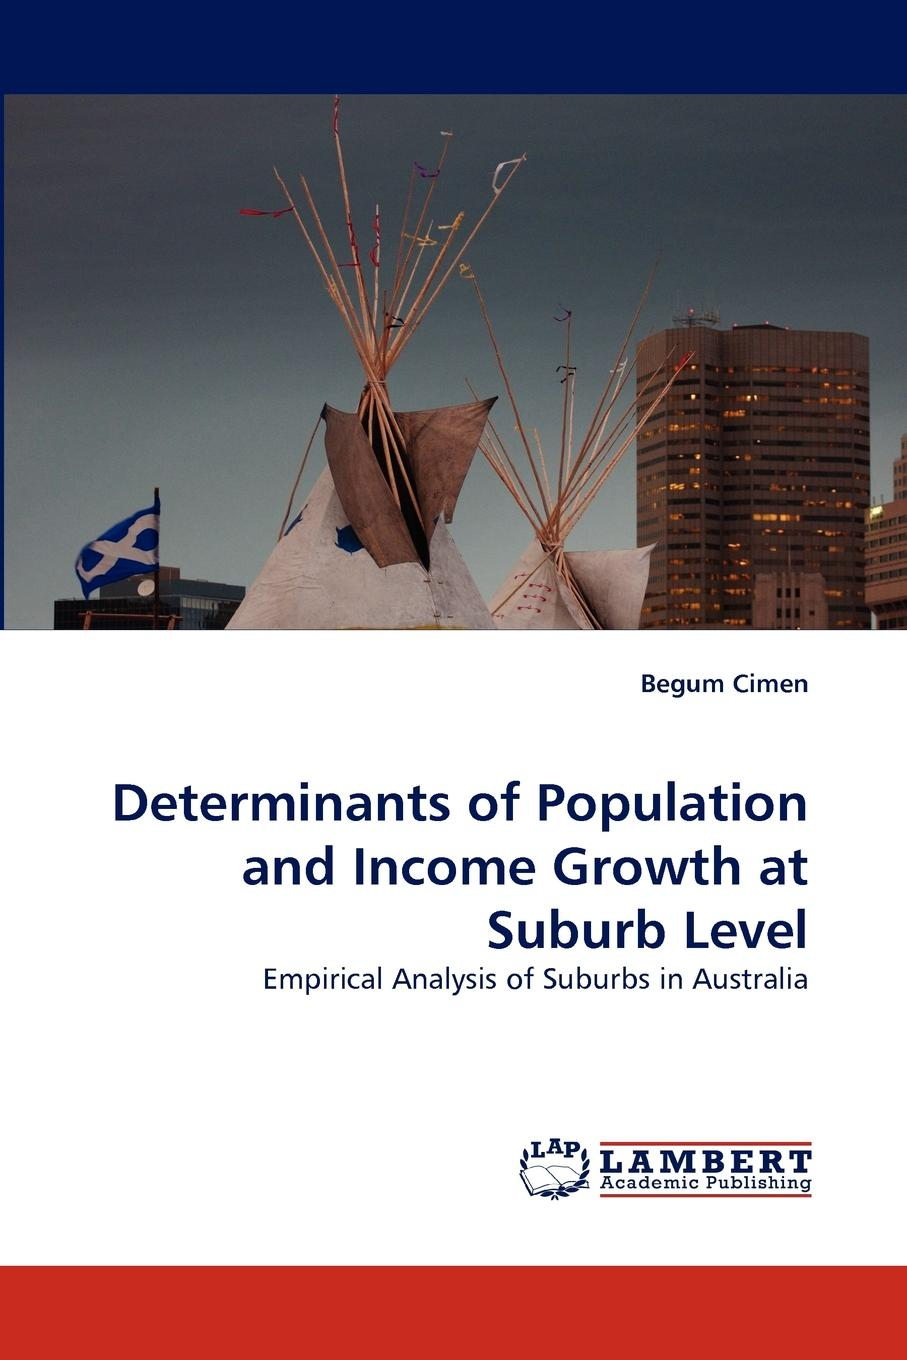 Begum Cimen Determinants of Population and Income Growth at Suburb Level